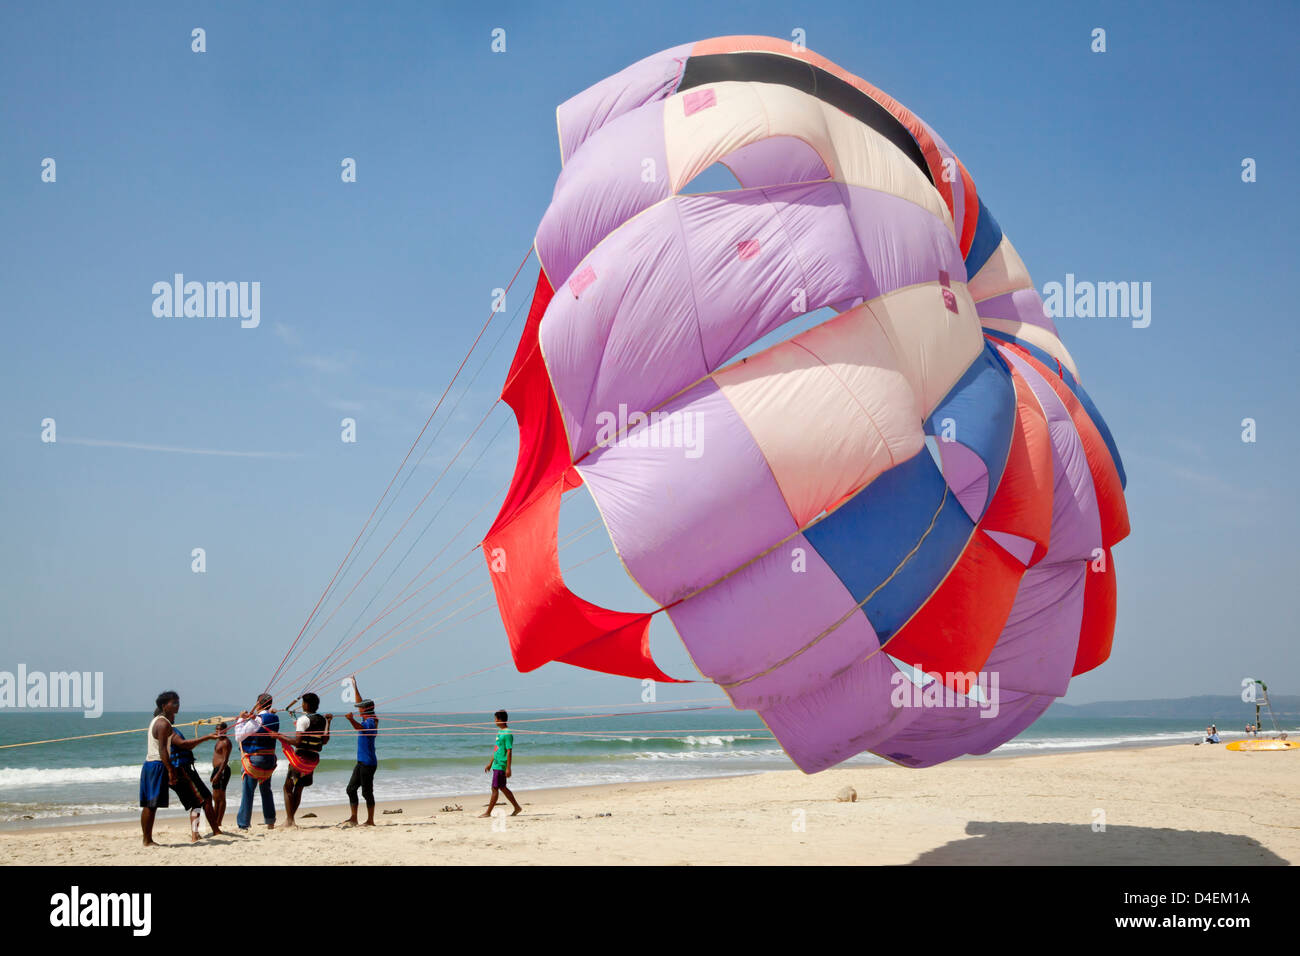 Workers getting a customer ready for para gliding over the sandy shoreline on a secluded beach patrolled by lifeguards - Stock Image